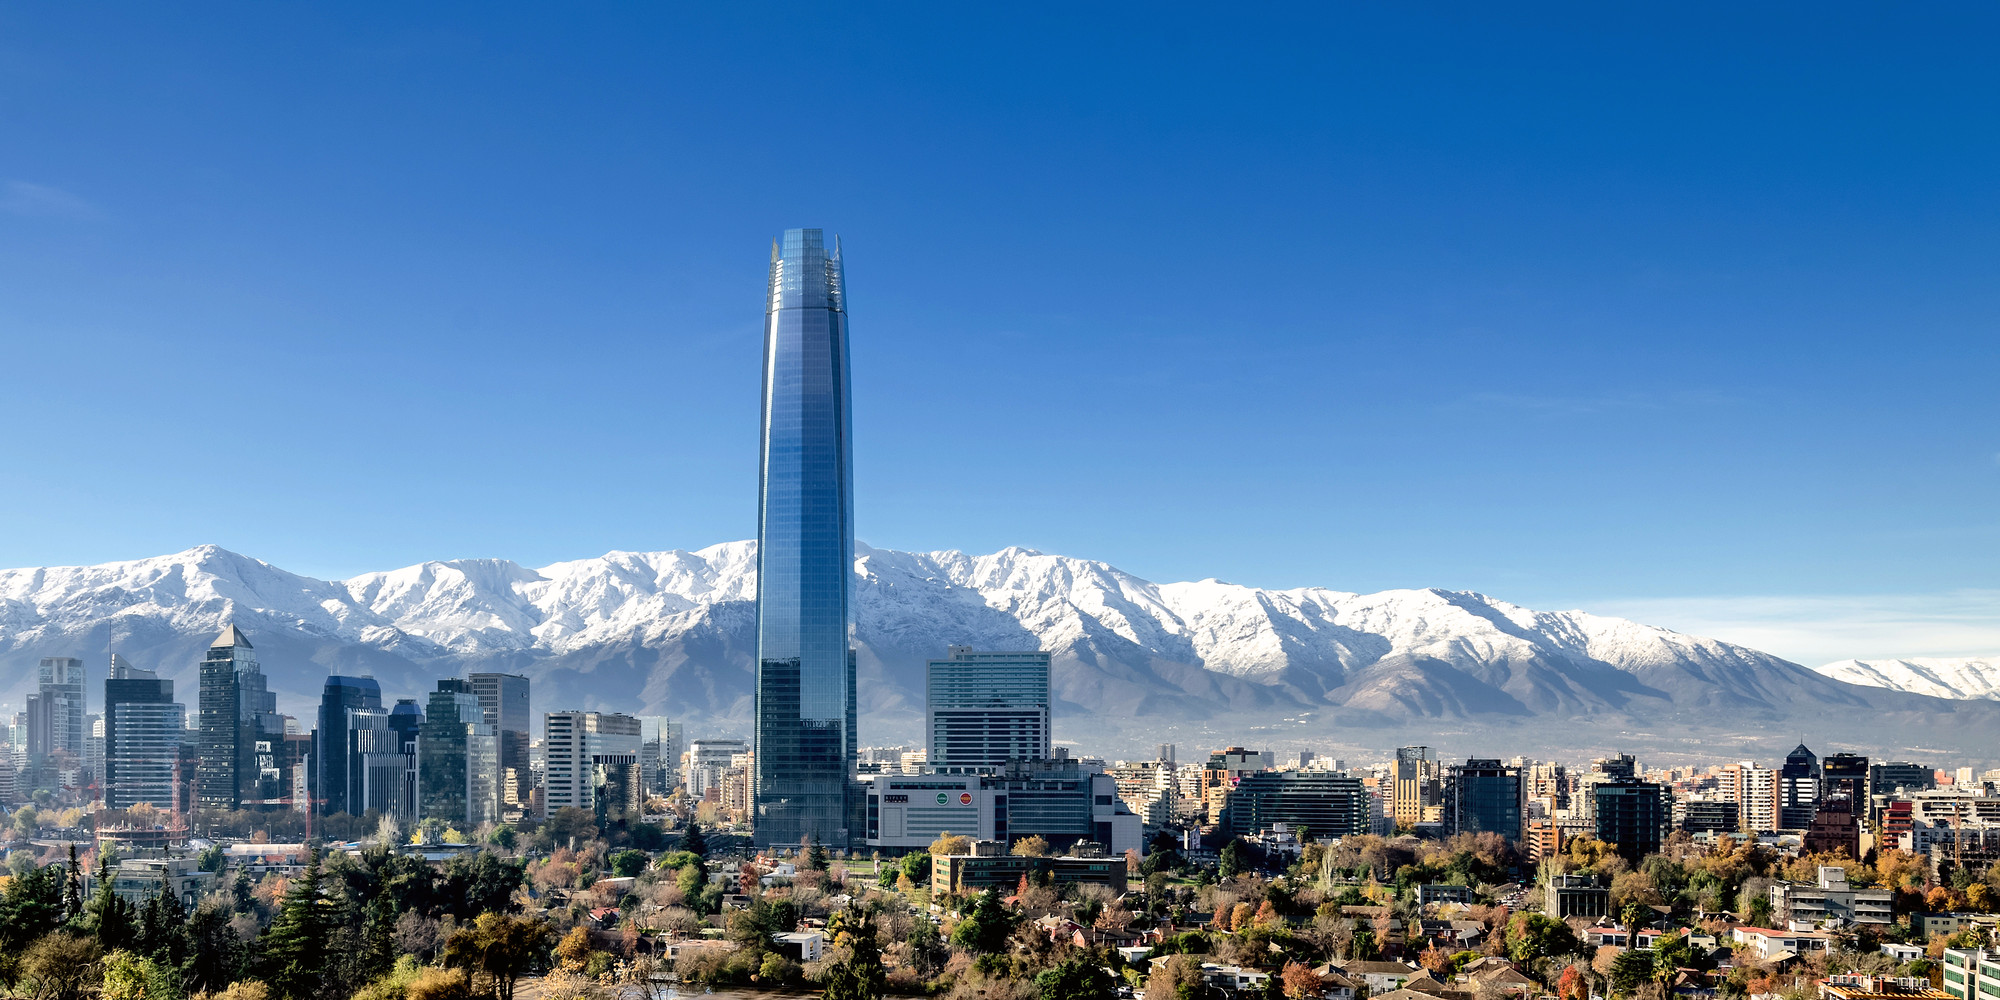 13 New Buildings Join the World's 100 Tallest List in Record-Breaking Year, 2014 Tallest #10: Torre Costanera, Santiago, 300 meters. Image © Pablo Blanco